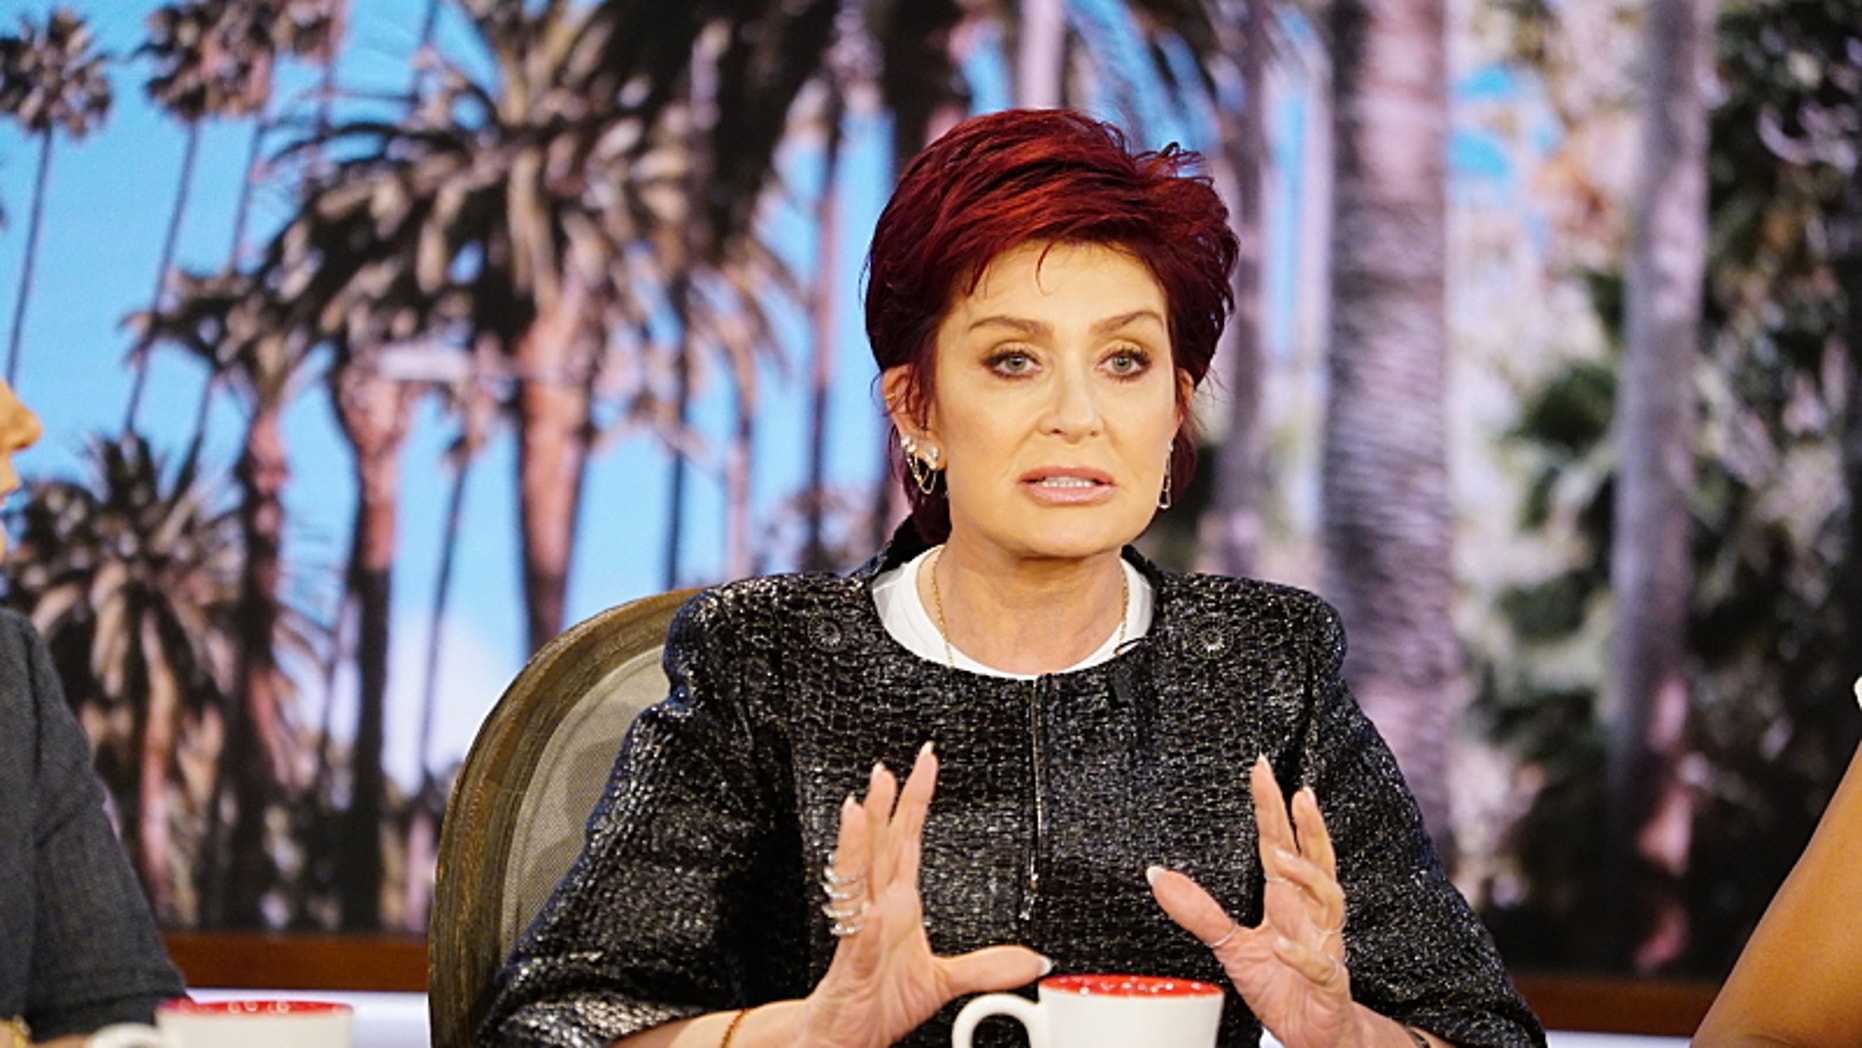 """Season 7 premieres with """"The 7 Wonders of THE TALK""""! Hosts reveal answers to the biggest questions viewers have """"wondered"""" about, kicking off with Sharon Osbourne, Monday, September 12, 2016 on the CBS Television Network. Sharon Osbourne, shown. Photo: Sonja Flemming/CBS ©2016 CBS Broadcasting, Inc. All Rights Reserved"""